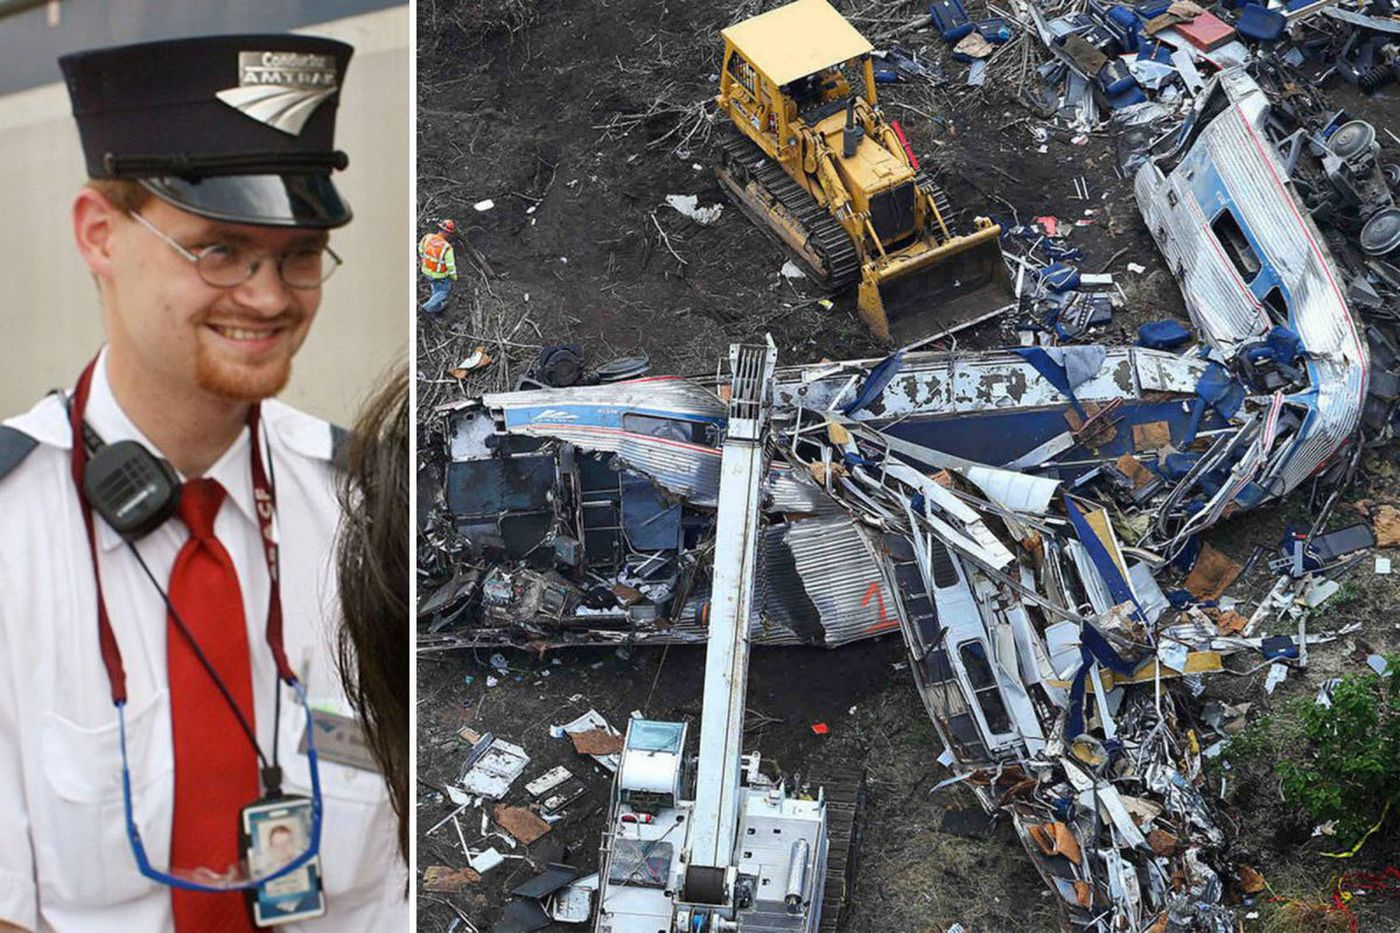 All charges reinstated against engineer in fatal 2015 Amtrak derailment in Philly